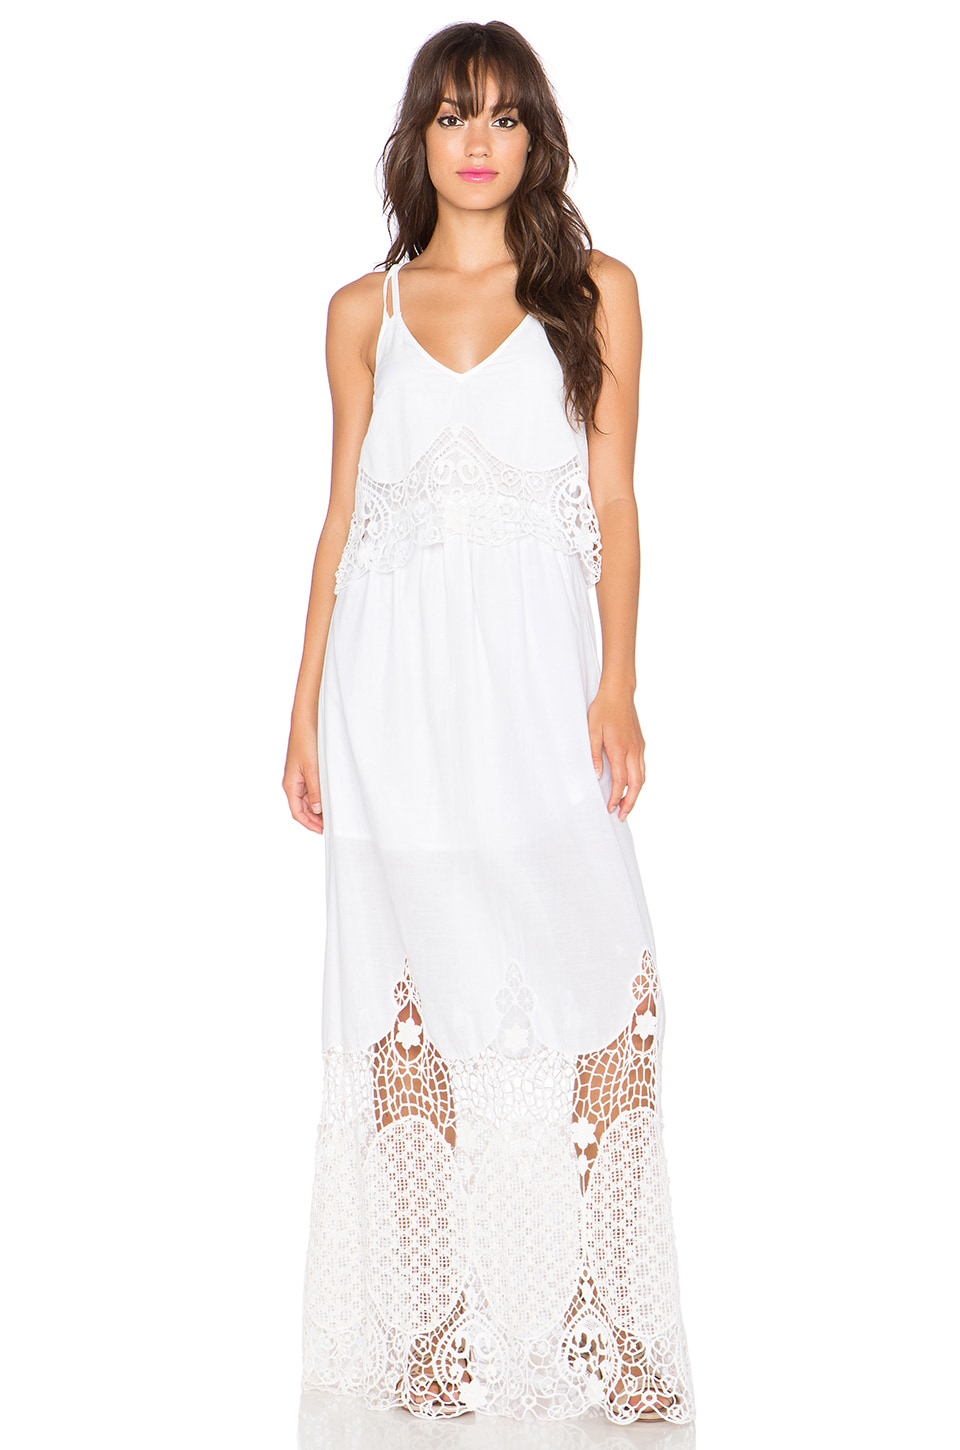 TRYB212 Heather Maxi Dress in White